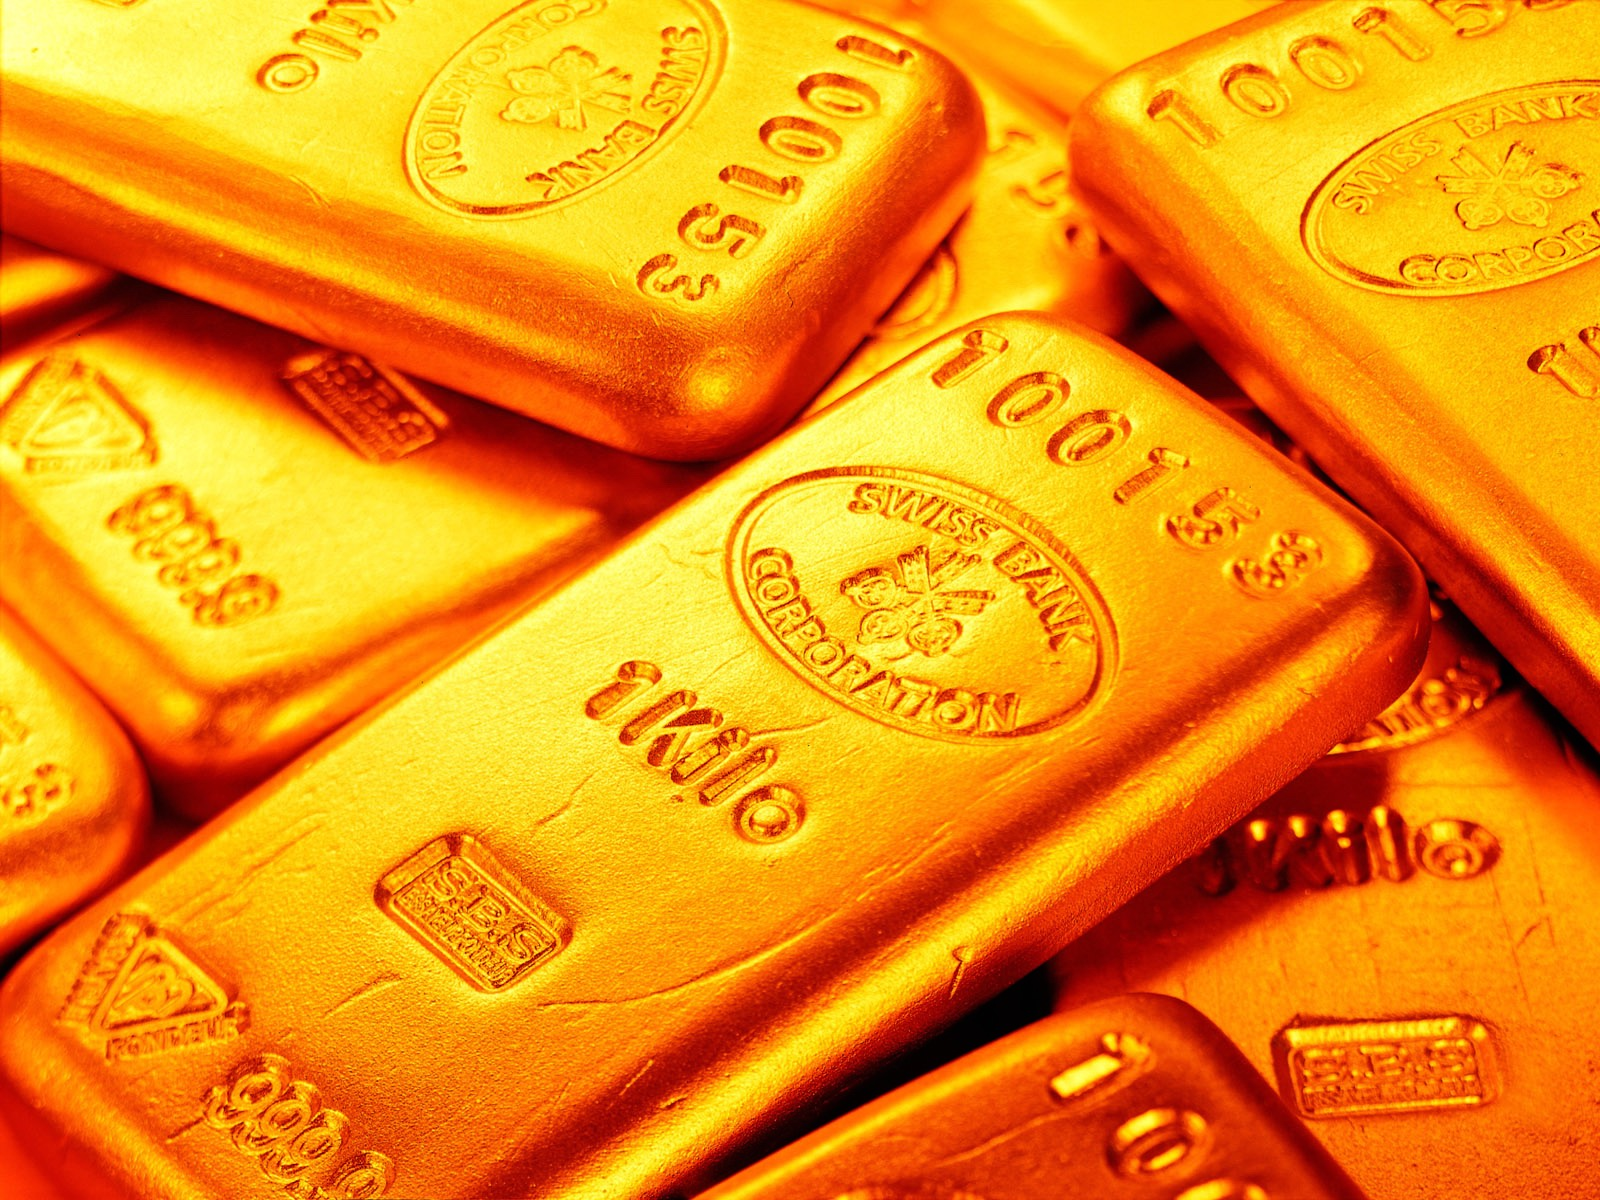 gold bullion, gold, texture, background